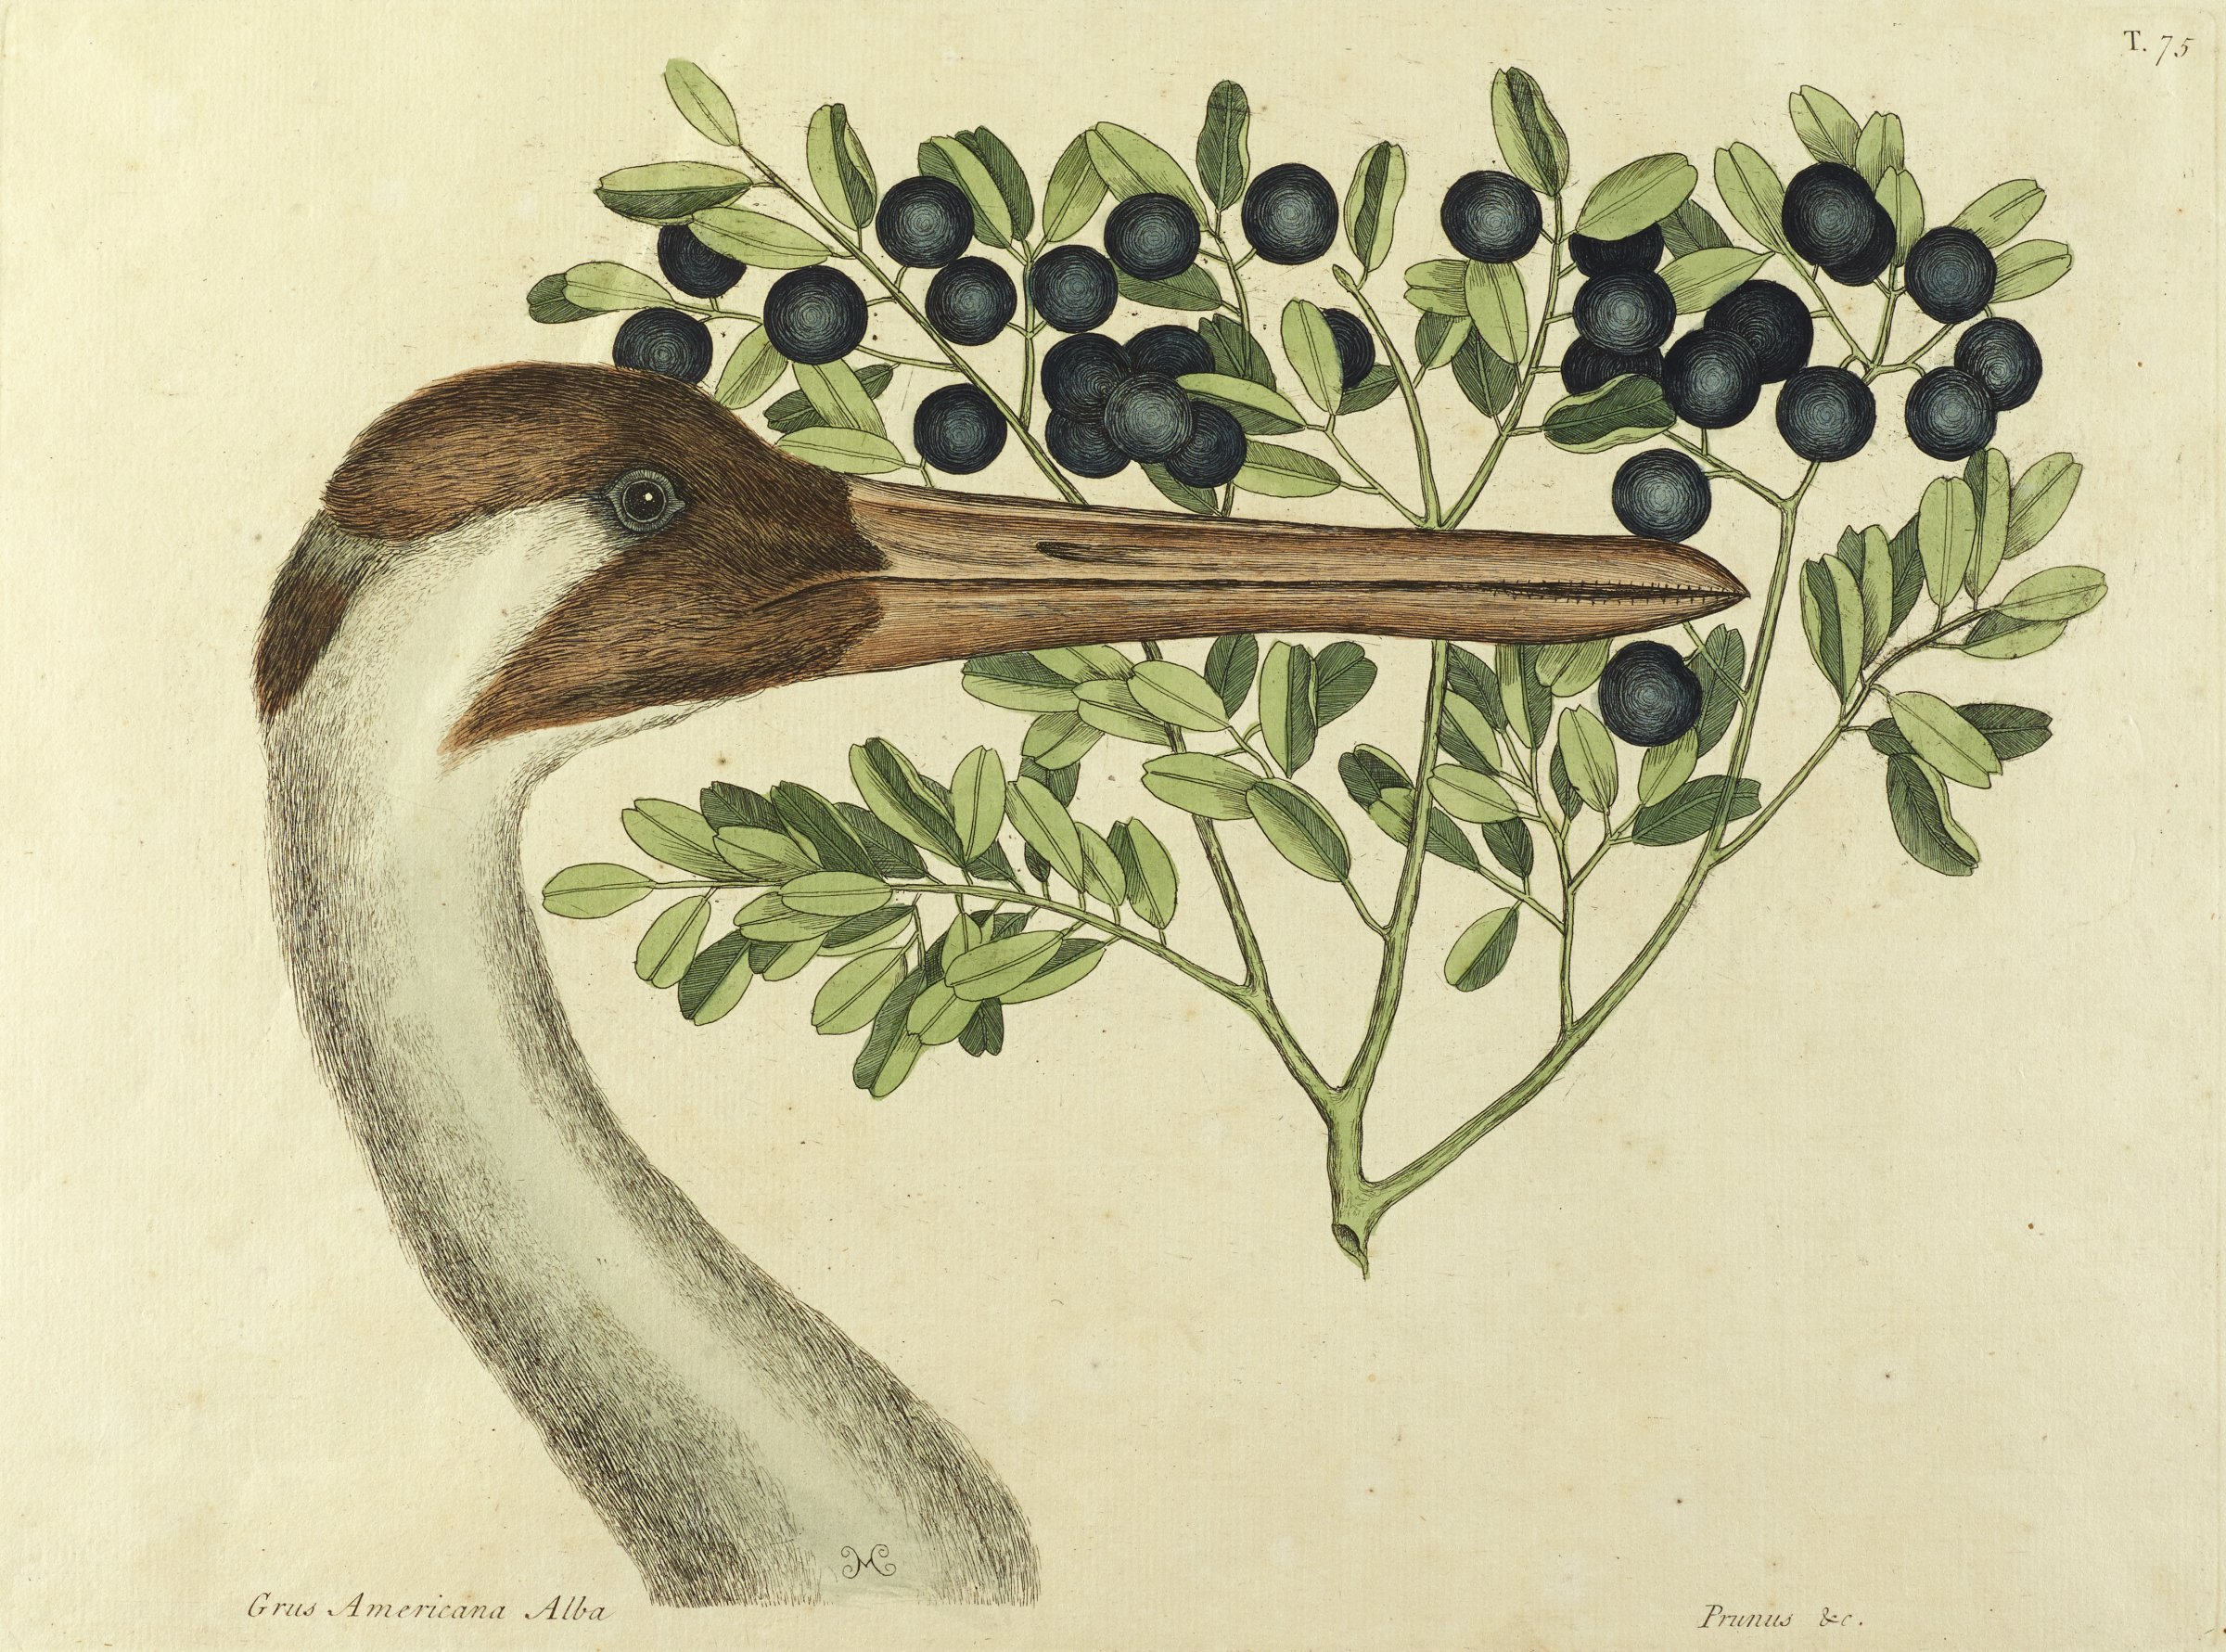 A bird with a long beak stands in profile view in front of a plant with short green leaves and a blue, round fruit.